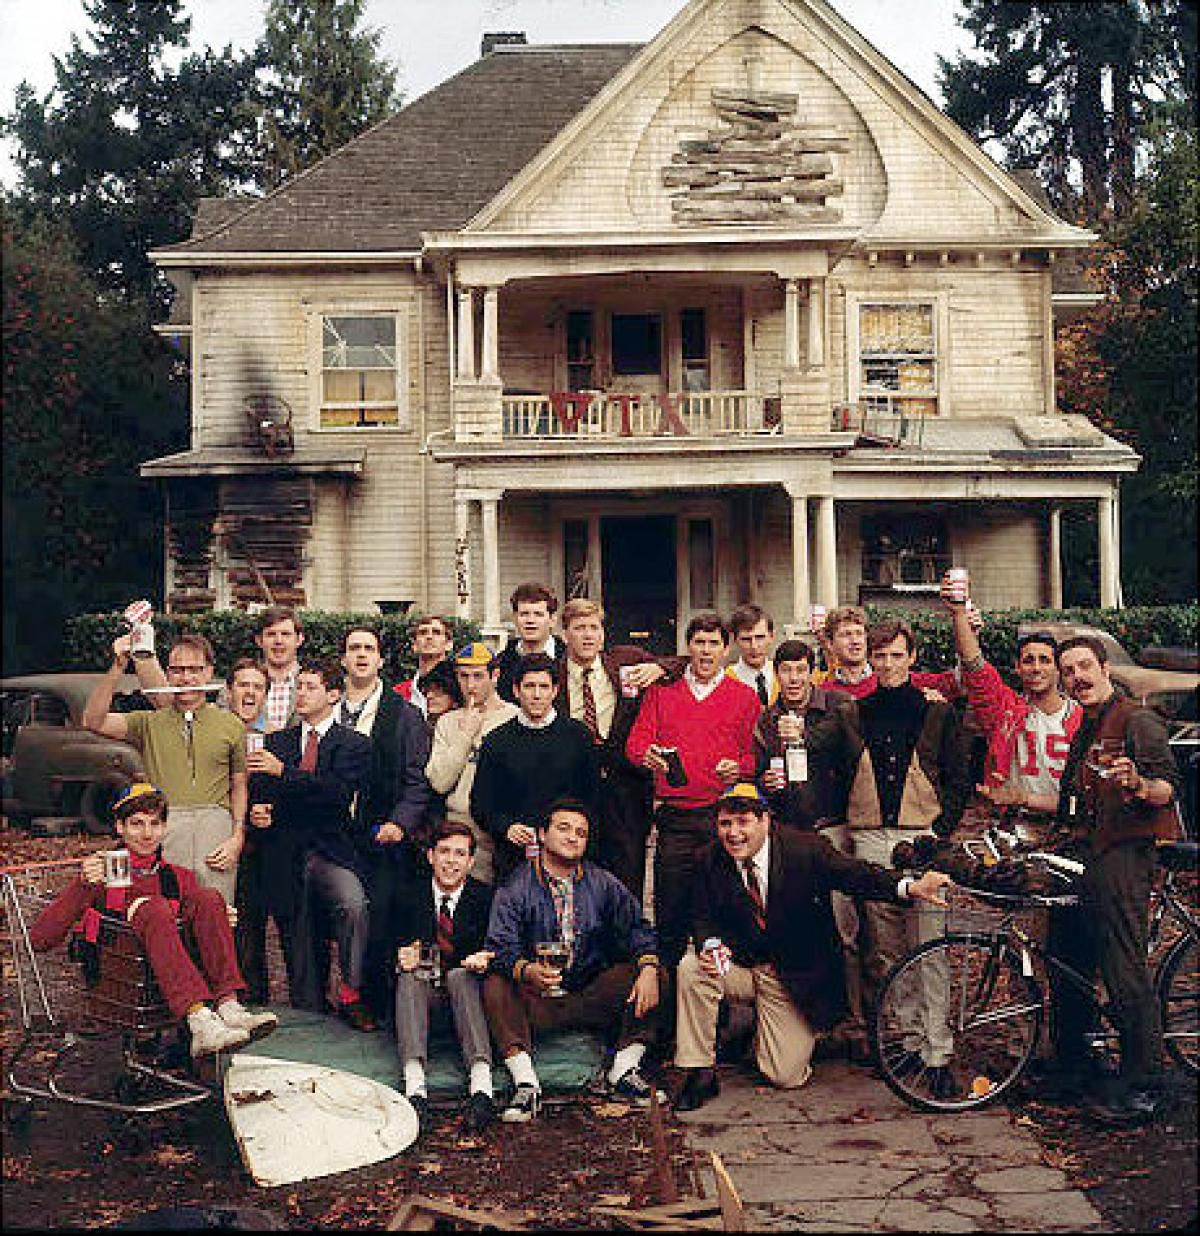 """<small><strong>The fictional Faber College fraternity in """"Animal House"""" loosely inspired by the Alpha Delta fraternity at Dartmouth College.</strong></small>"""